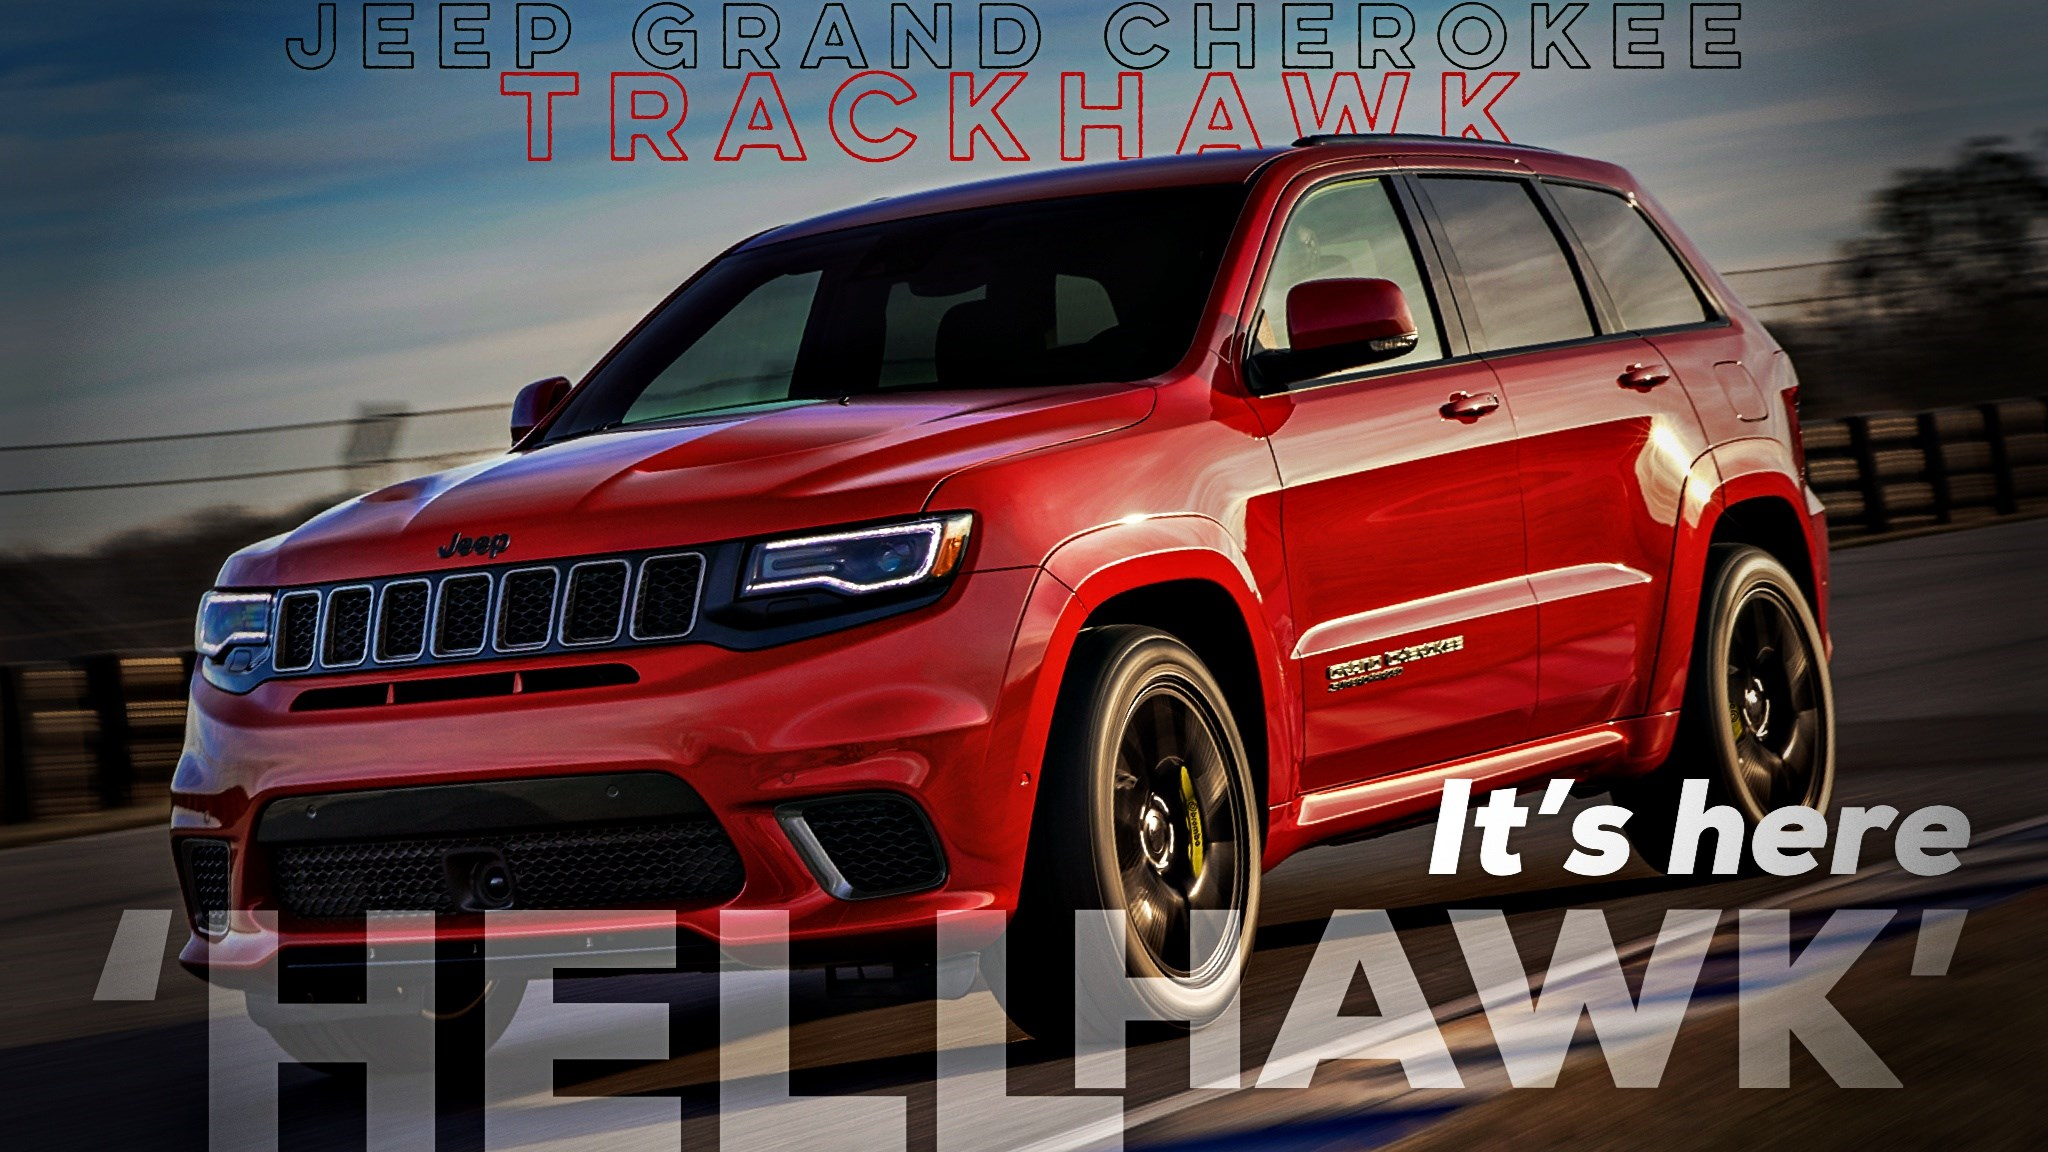 Jeep Grand Cherokee Trackhawk Arrives, For $135K